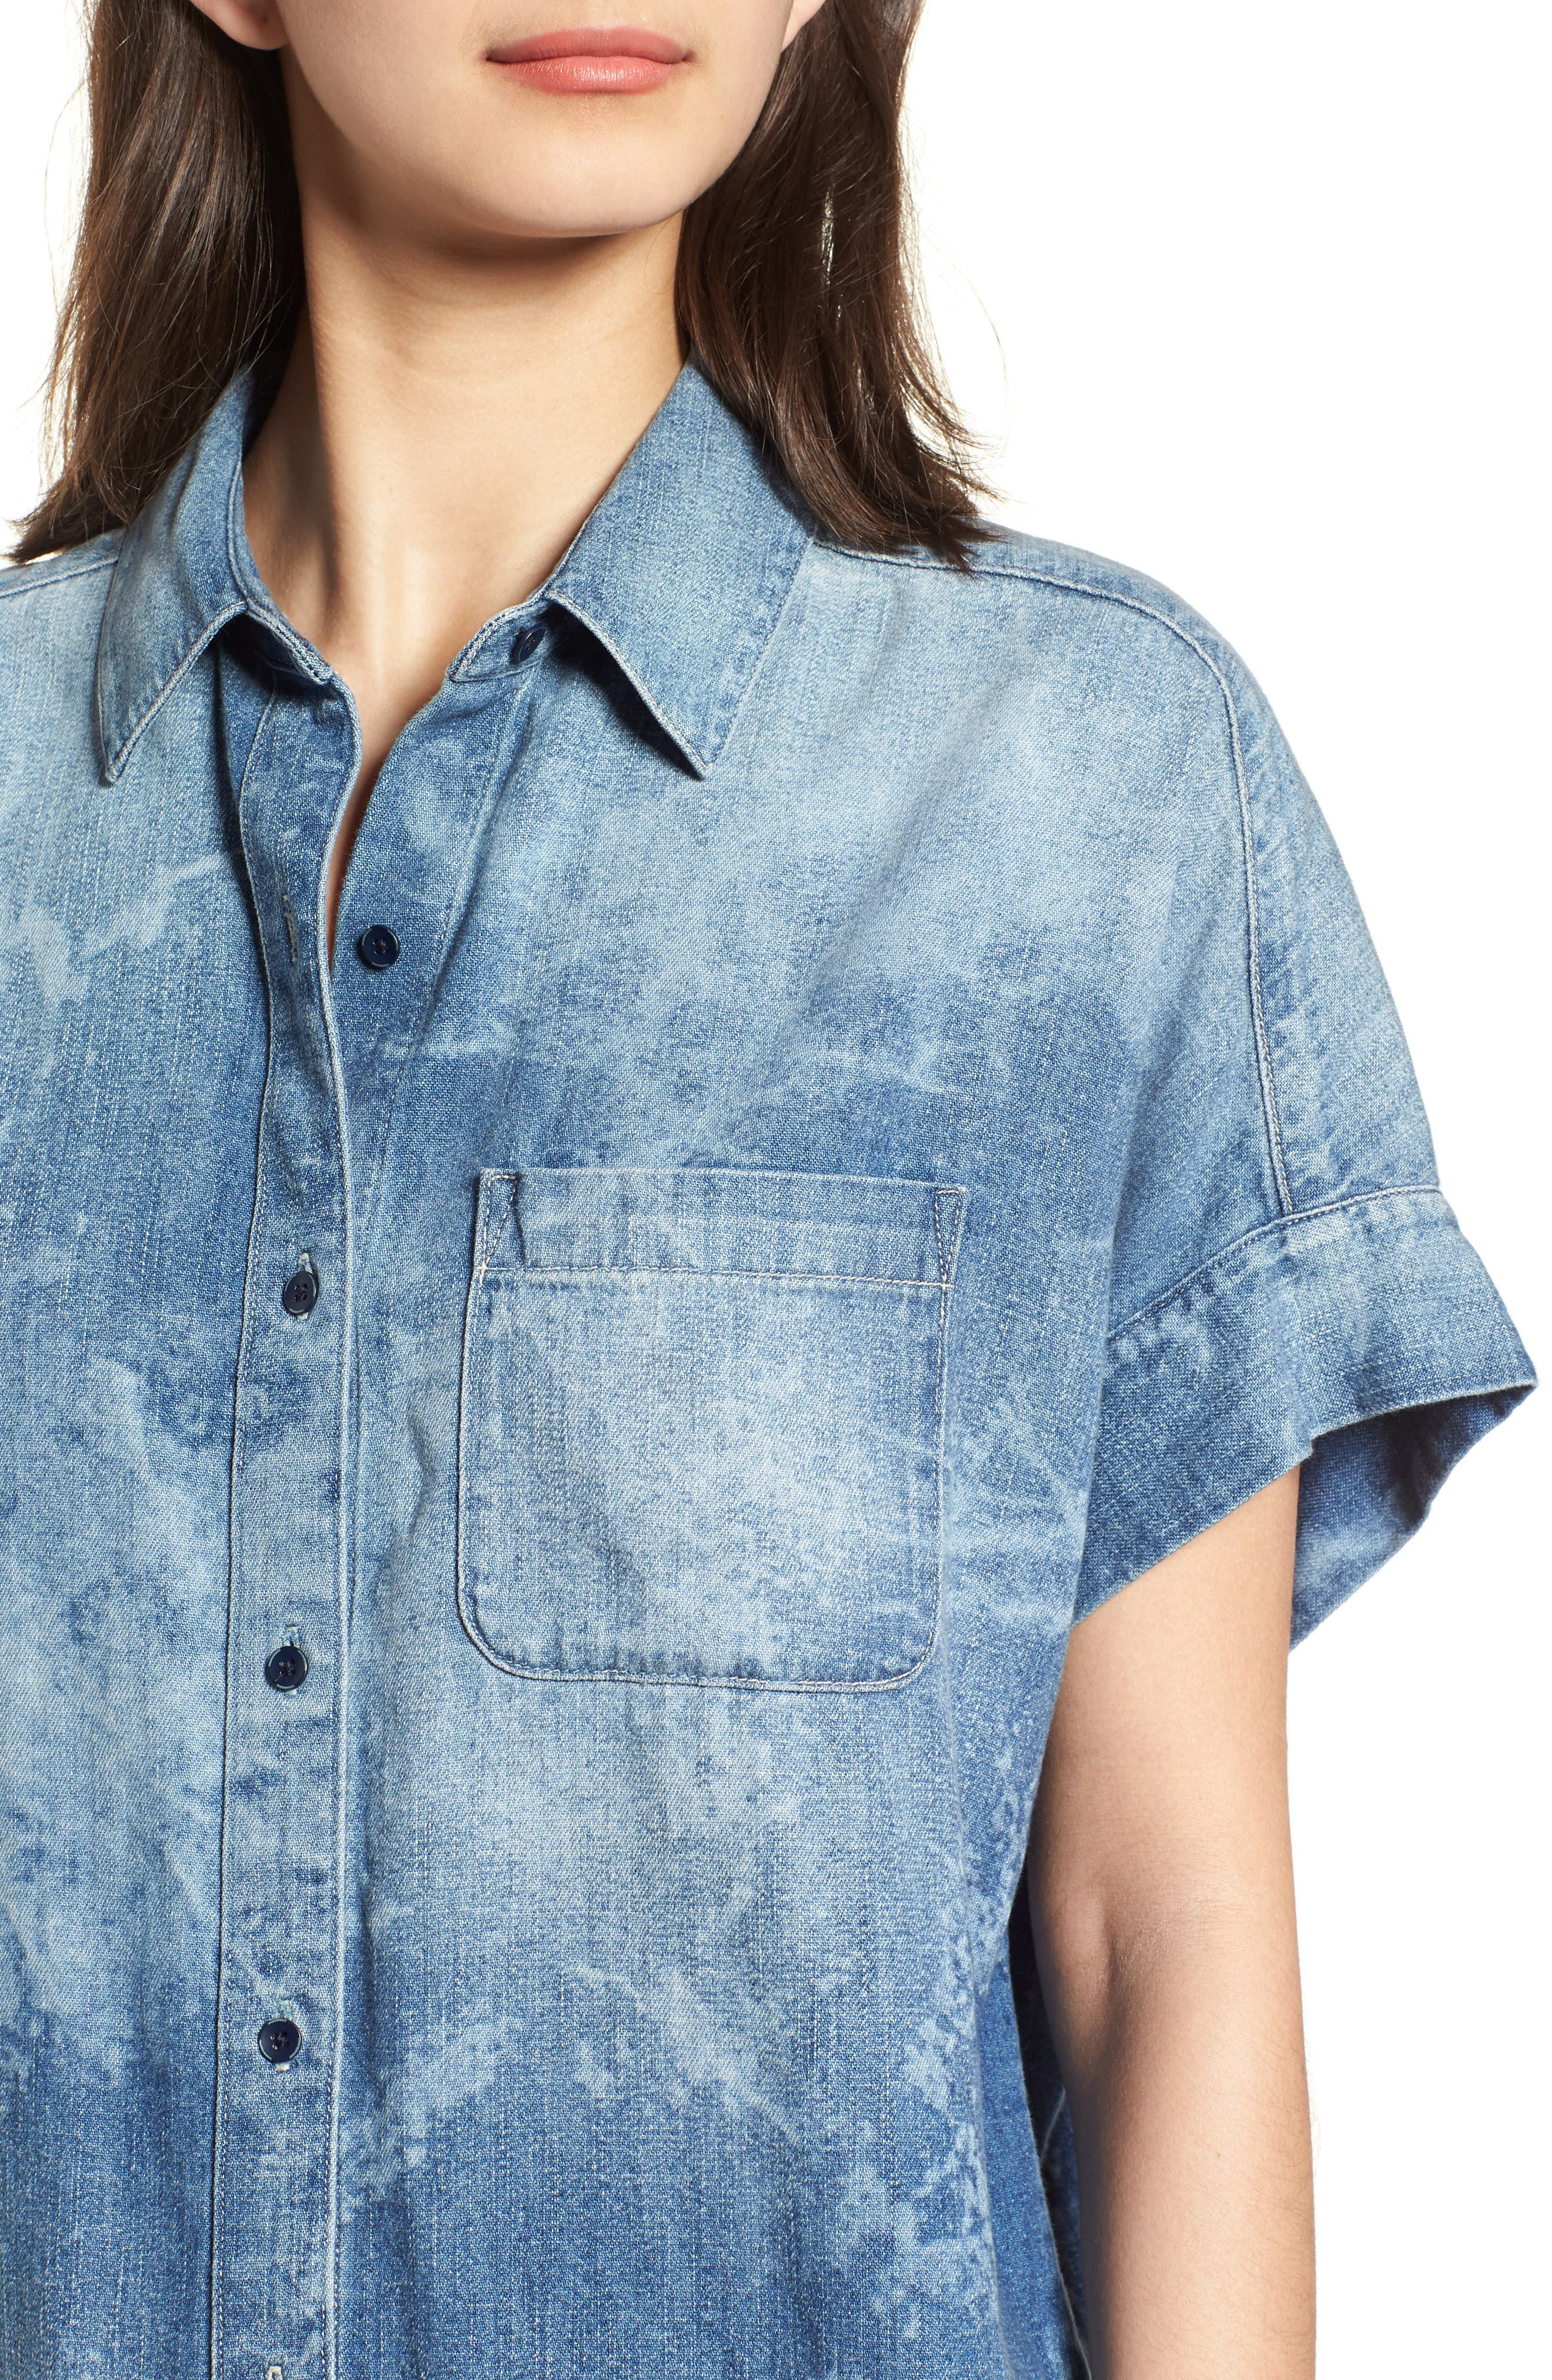 Hadley Denim Shirt,                             Alternate thumbnail 4, color,                             SUBLIME